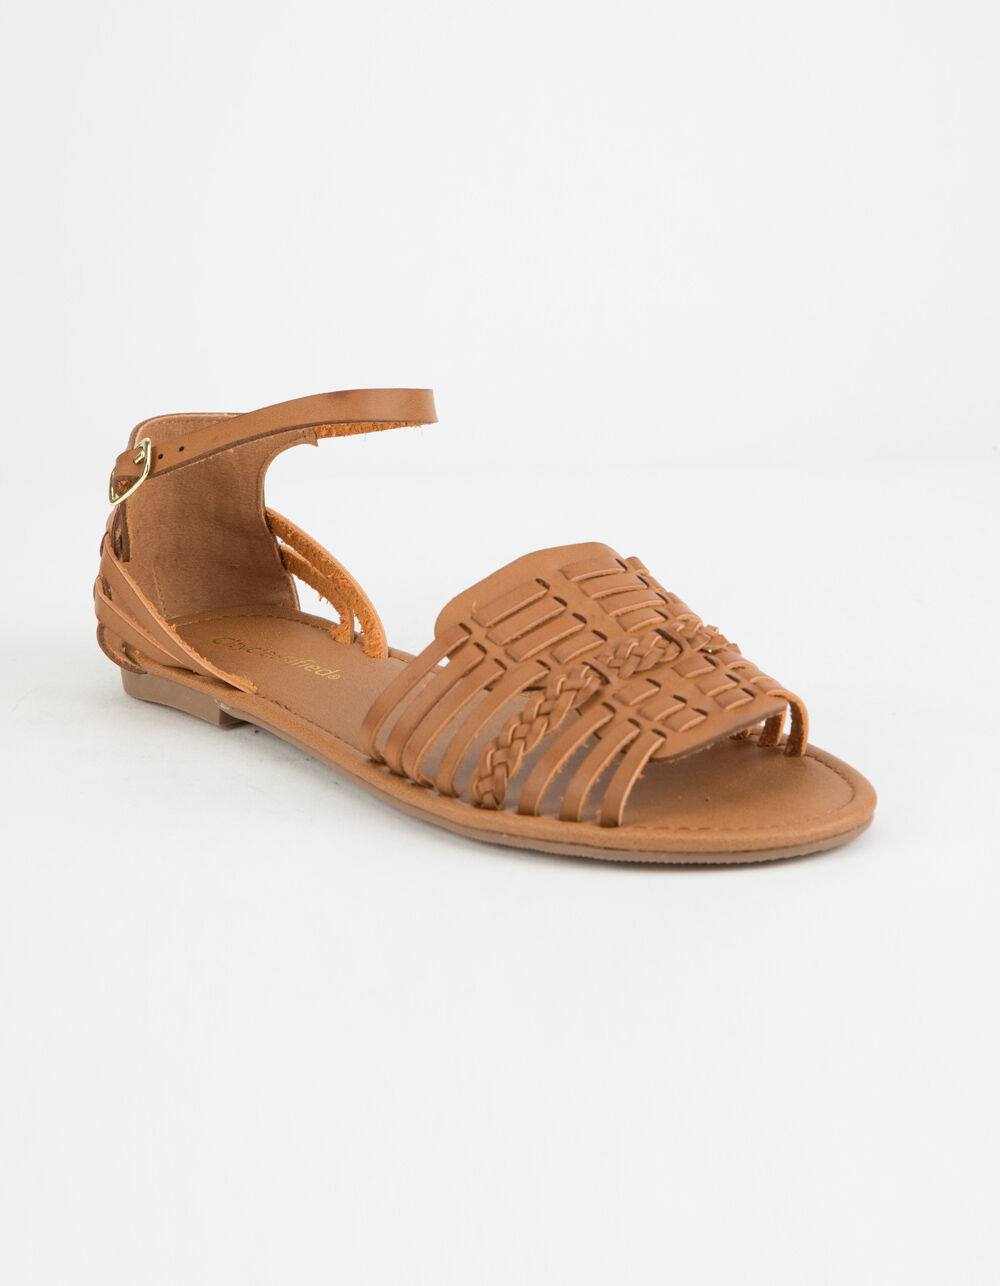 CITY CLASSIFIED Woven Basket Weave Tan Sandals